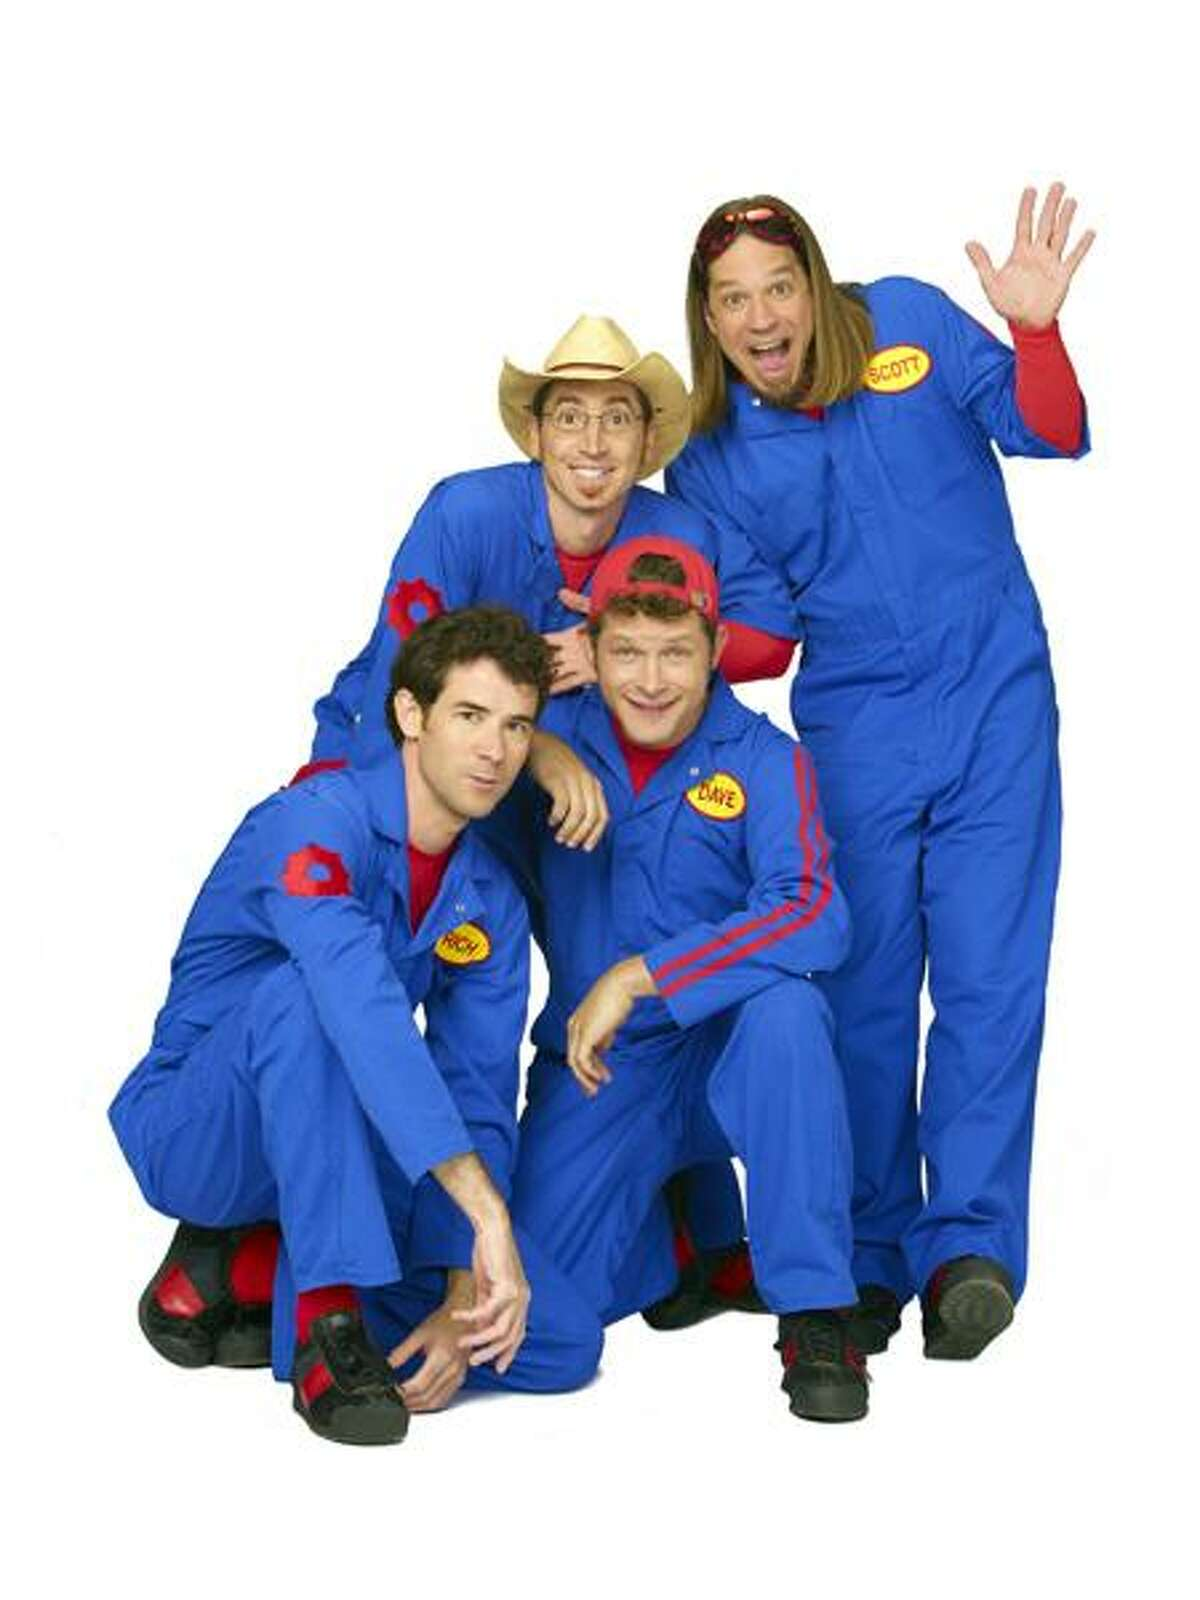 """IMAGINATION MOVERS - Rich Collins as """"Mover Rich,"""" Scott """"Smitty"""" Smith as """"Mover Smitty,"""" Dave Poche as """"Mover Dave"""" and Scott Durbin as """"Mover Scott"""" star in """"Imagination Movers"""" airing on Disney Channel. (DISNEY CHANNEL/BOB D'AMICO)"""